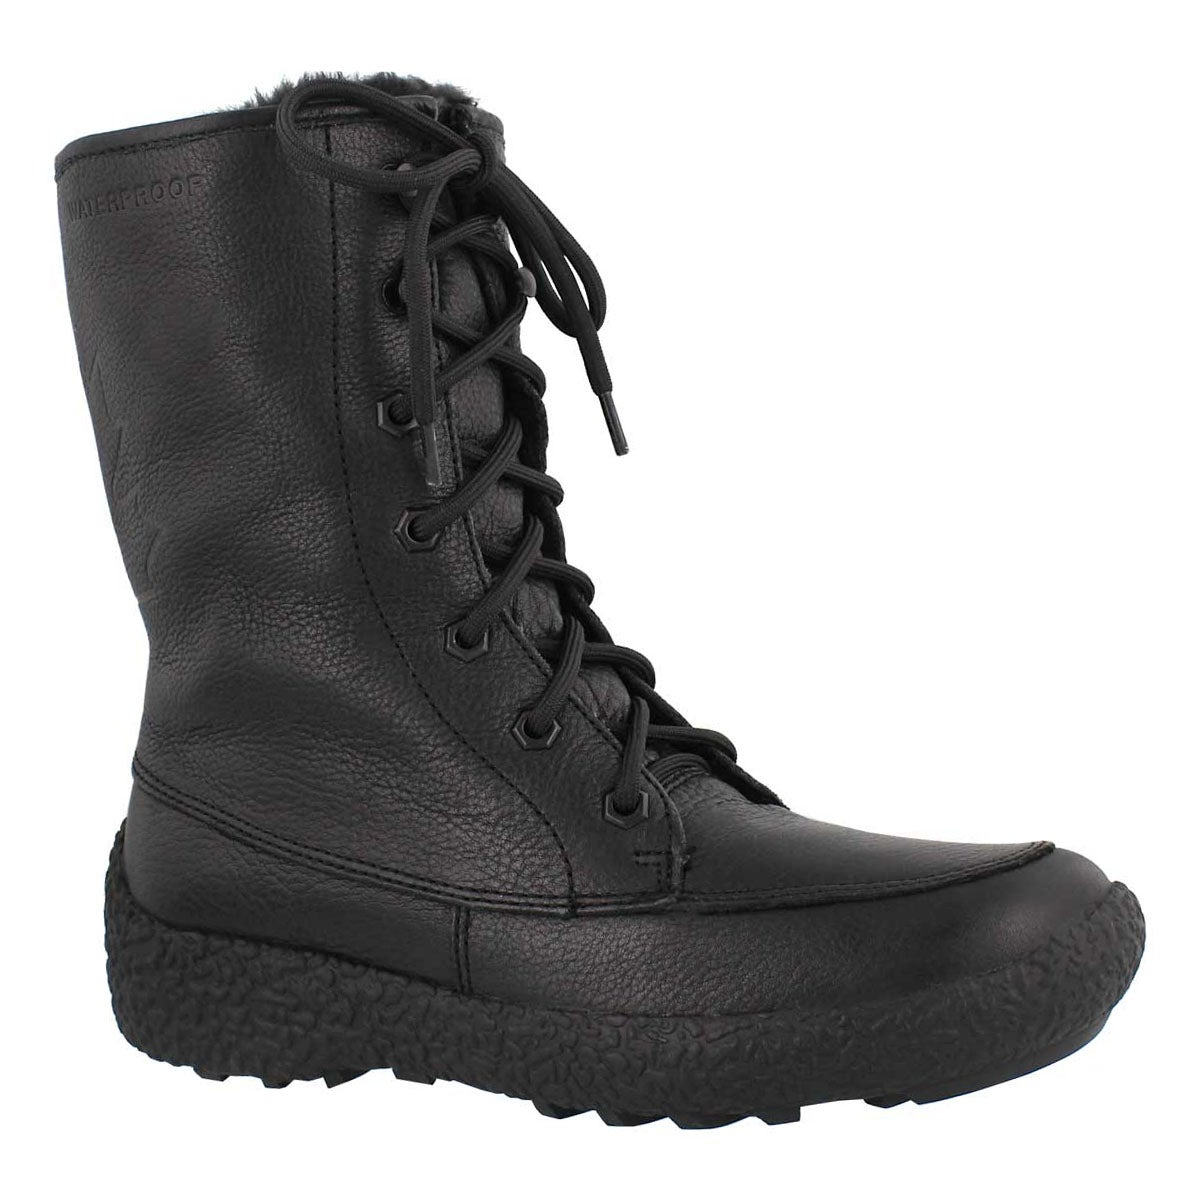 Women's CHEYENNE blk/blk waterproof winter boots